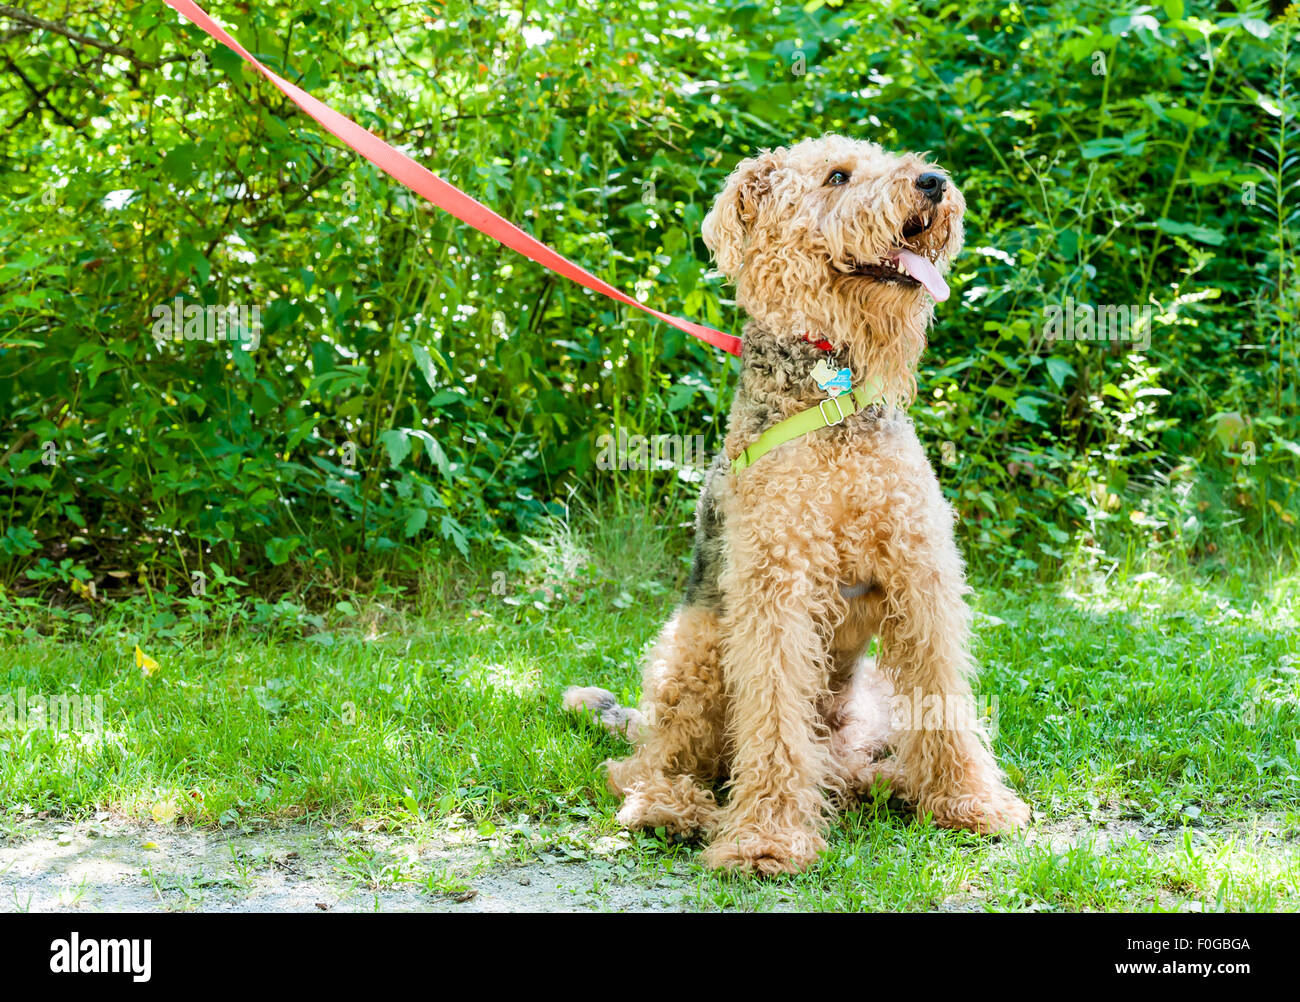 Friendly obedient dog out on a walk, waiting for his master's command. - Stock Image